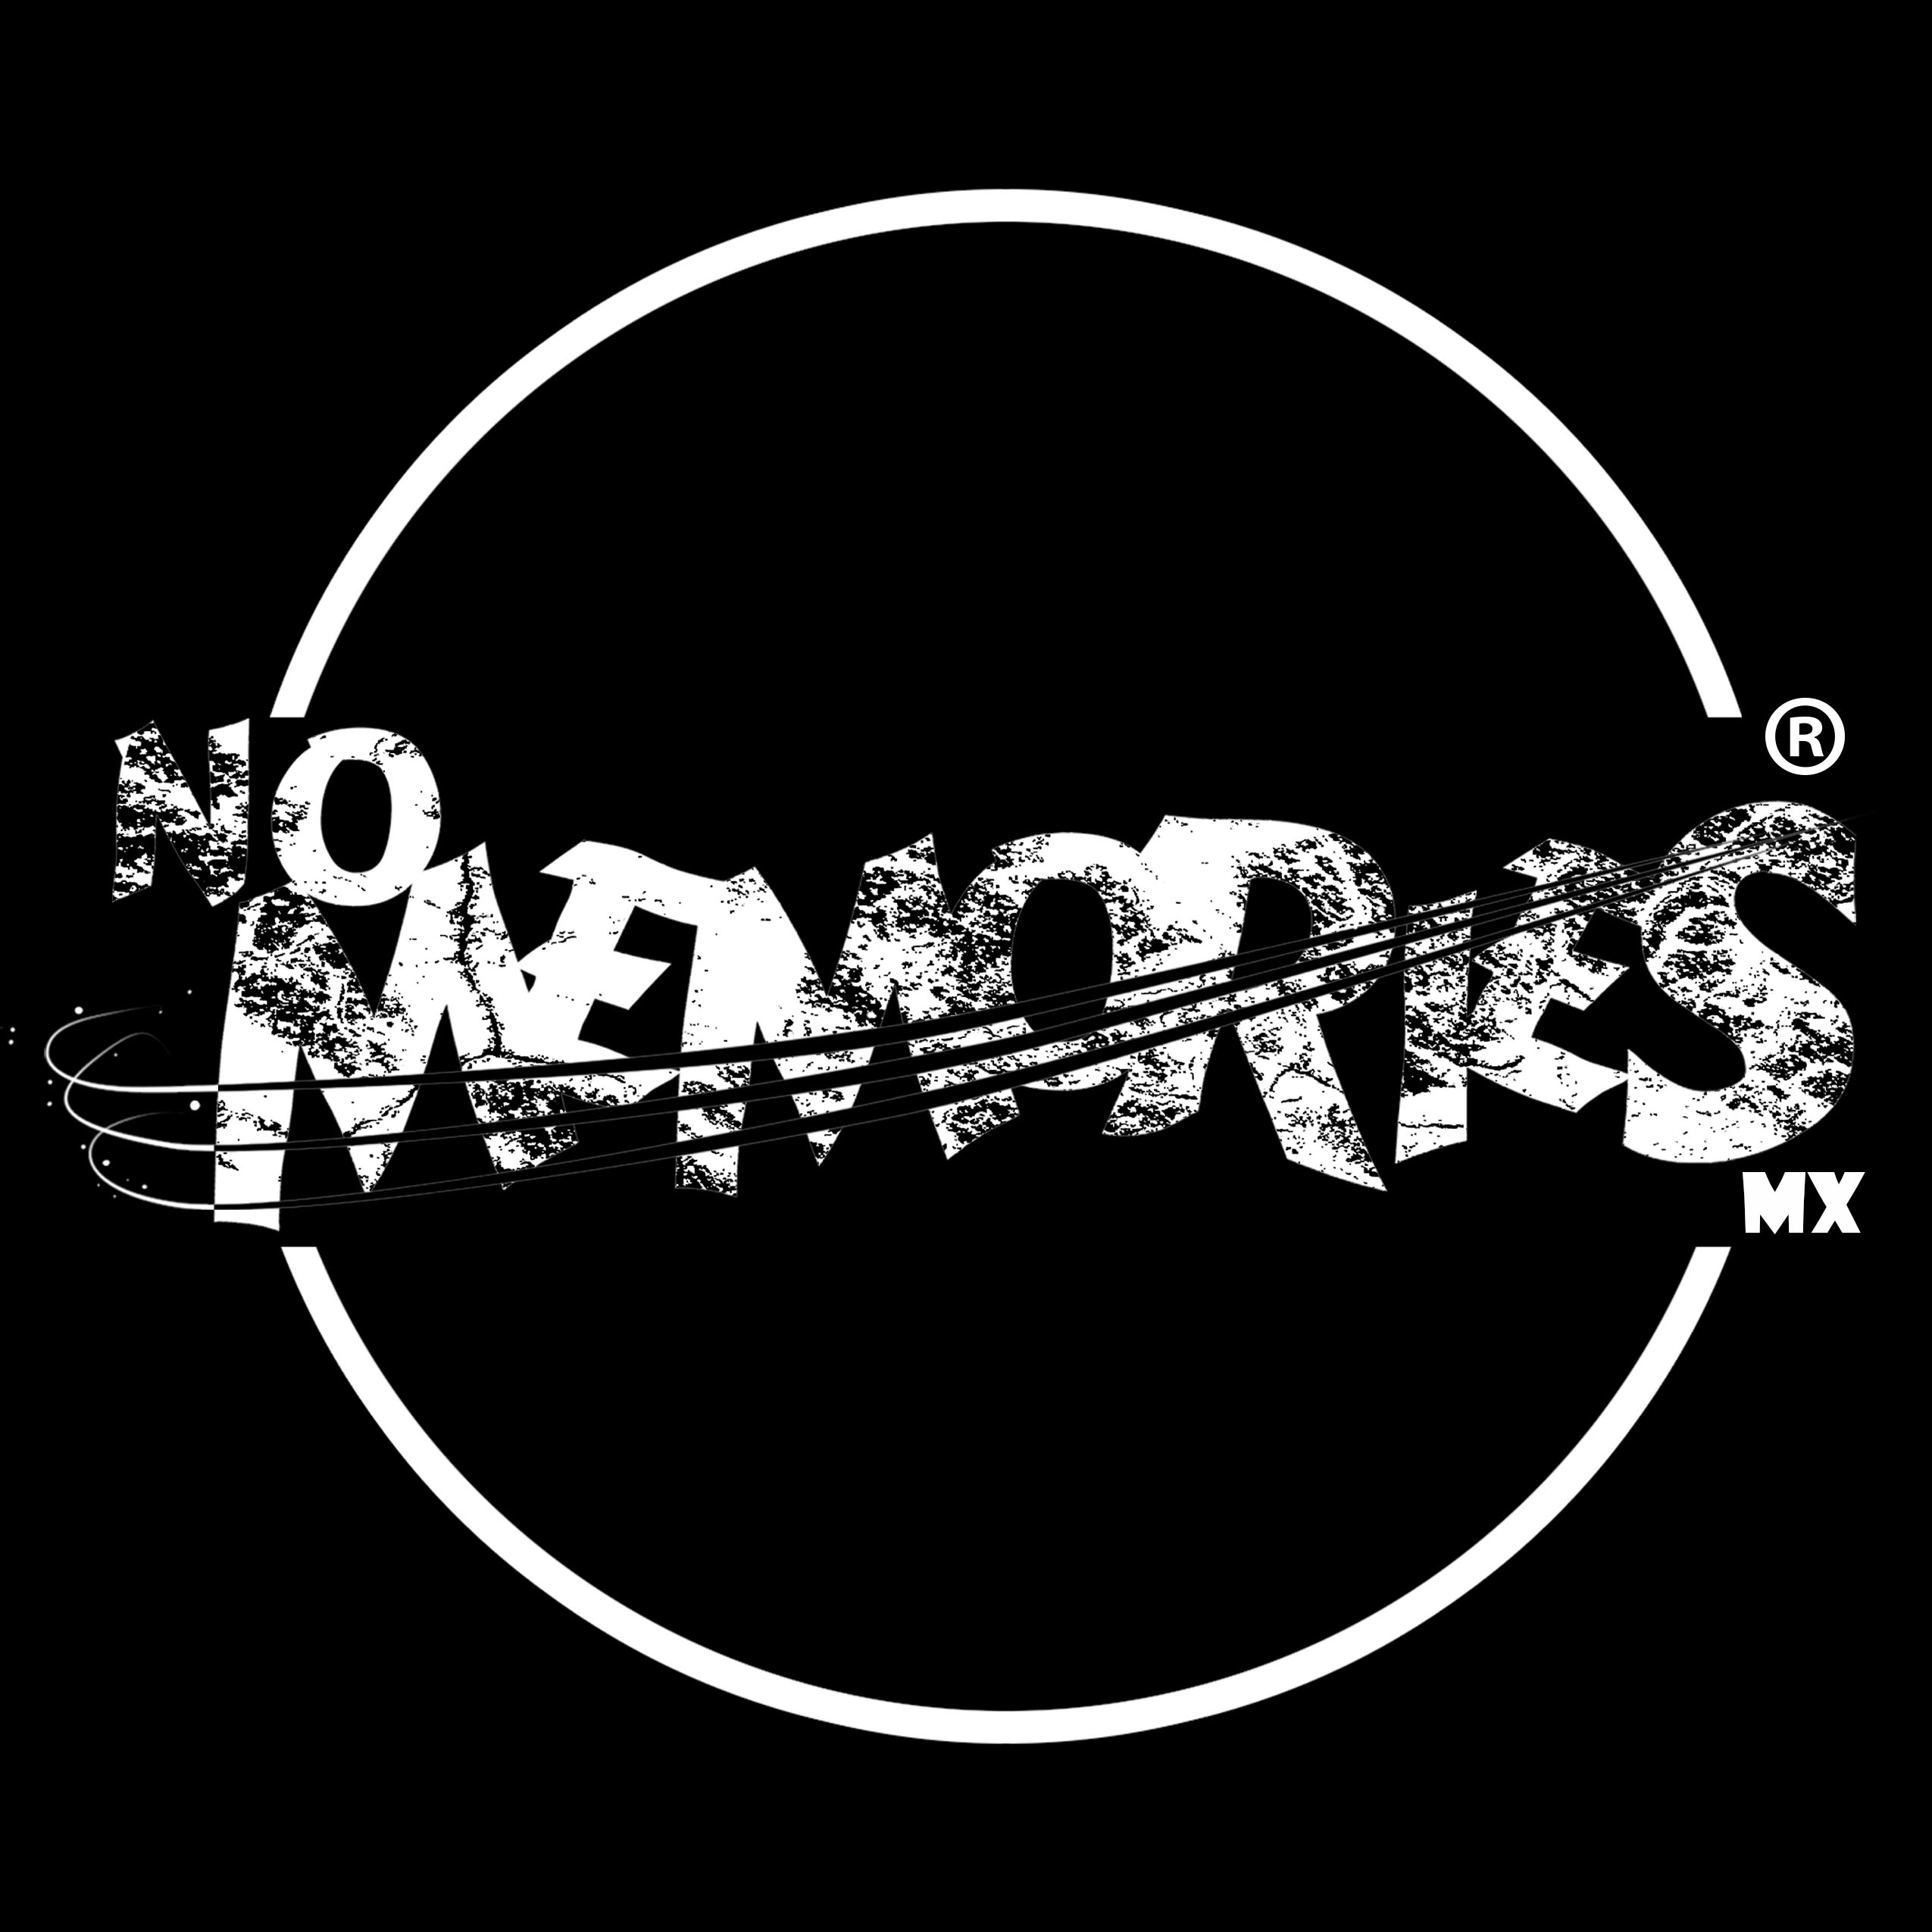 No Memories logo